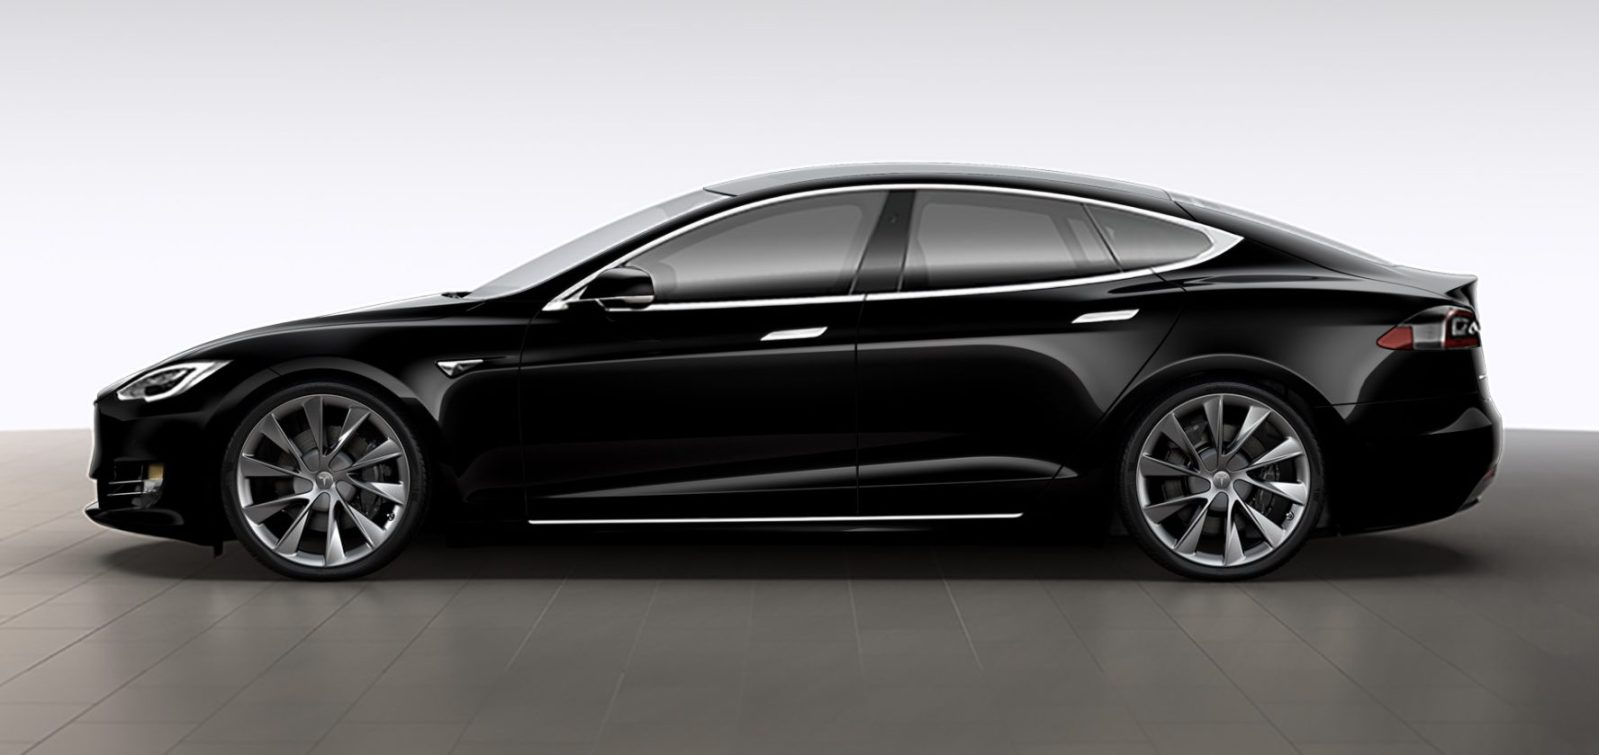 Tesla Introduces New Model S Wheels With Updated Design